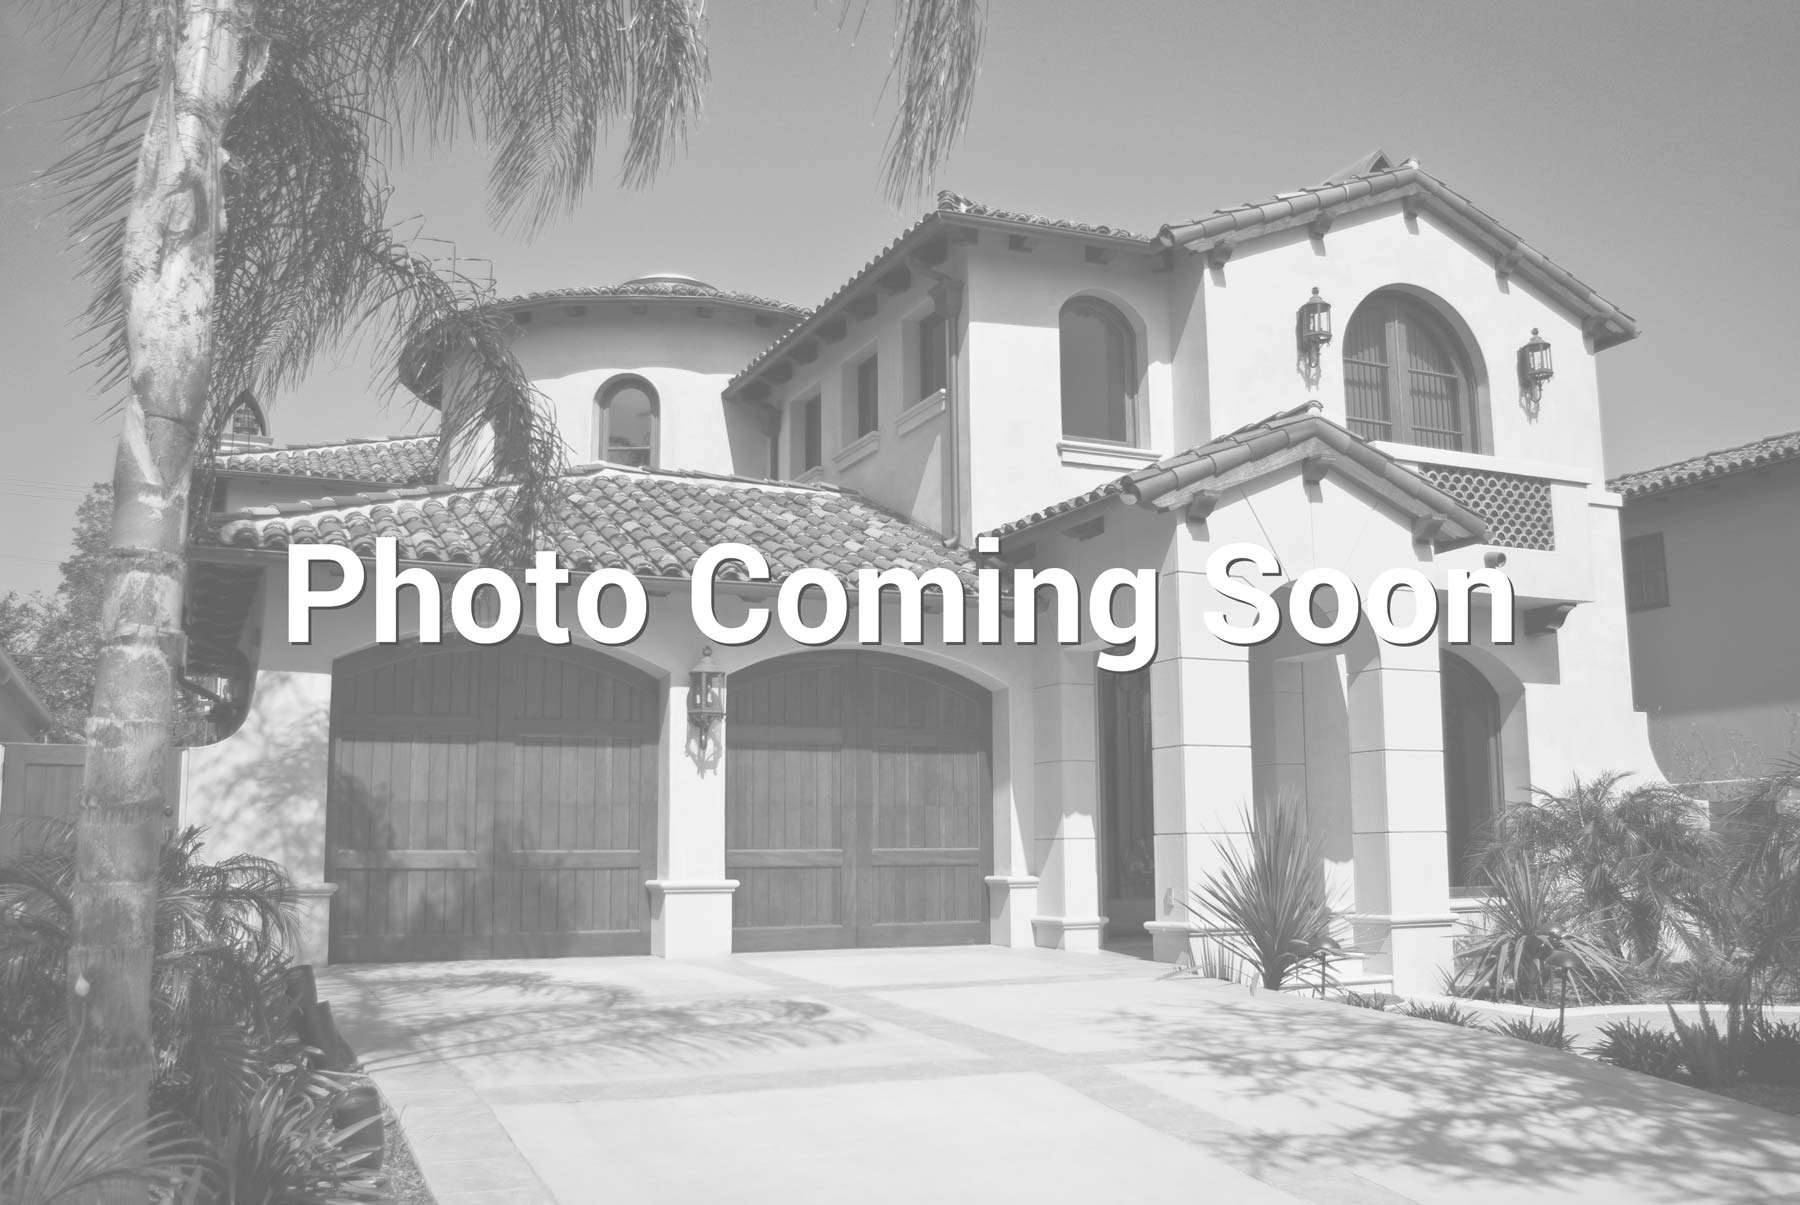 $465,000 - 4Br/3Ba - Home for Sale in Tempe Village, Tempe